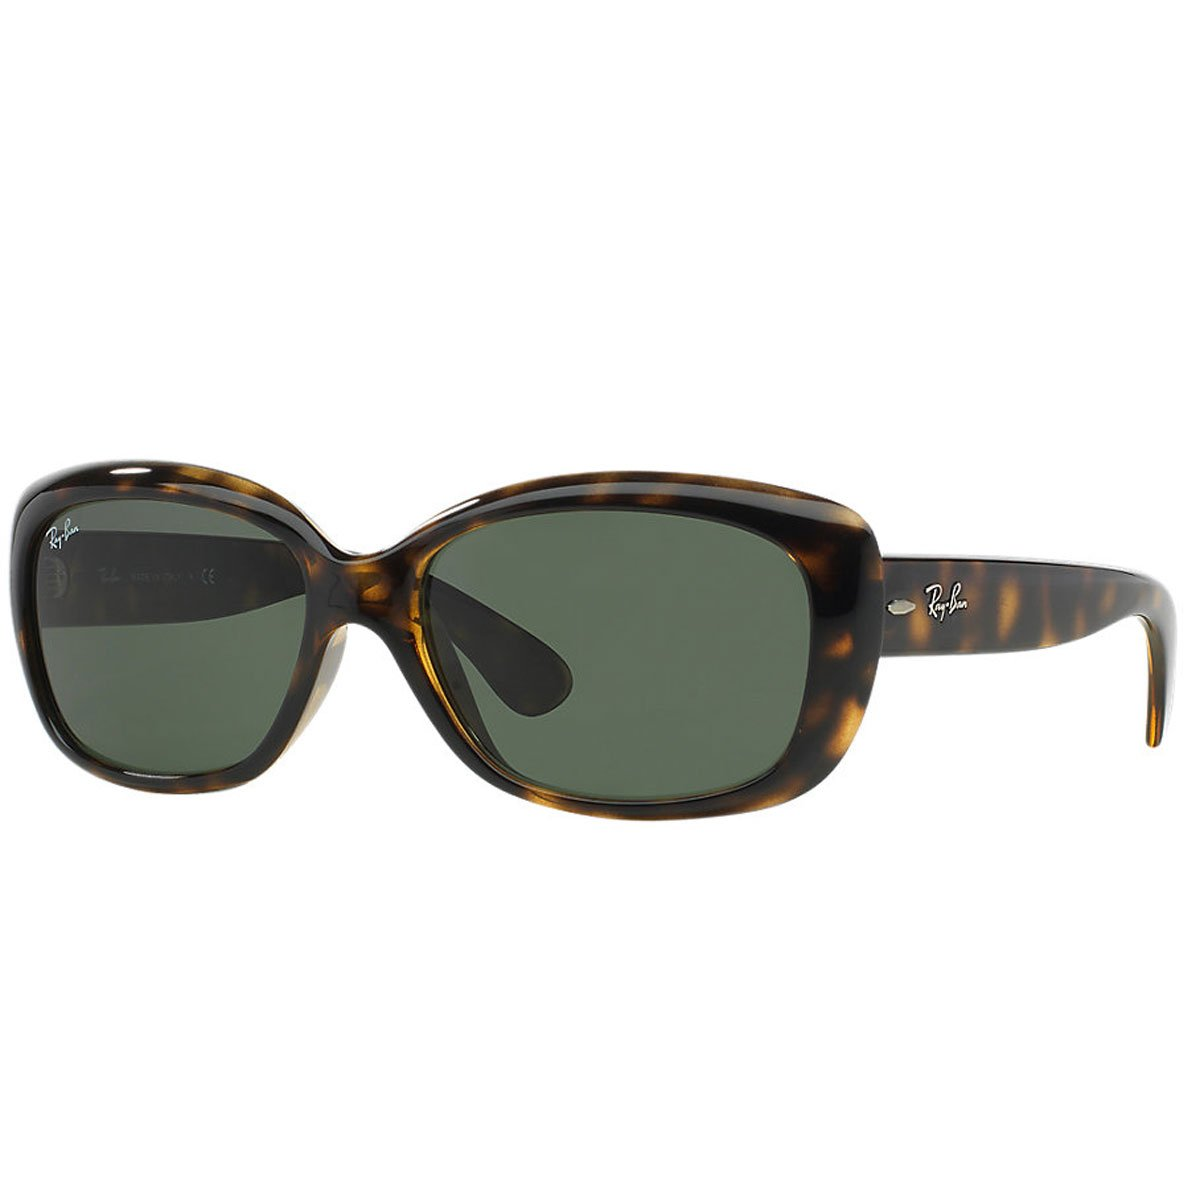 TALLA 58. Ray-Ban Sonnenbrille JACKIE OHH (RB 4101)